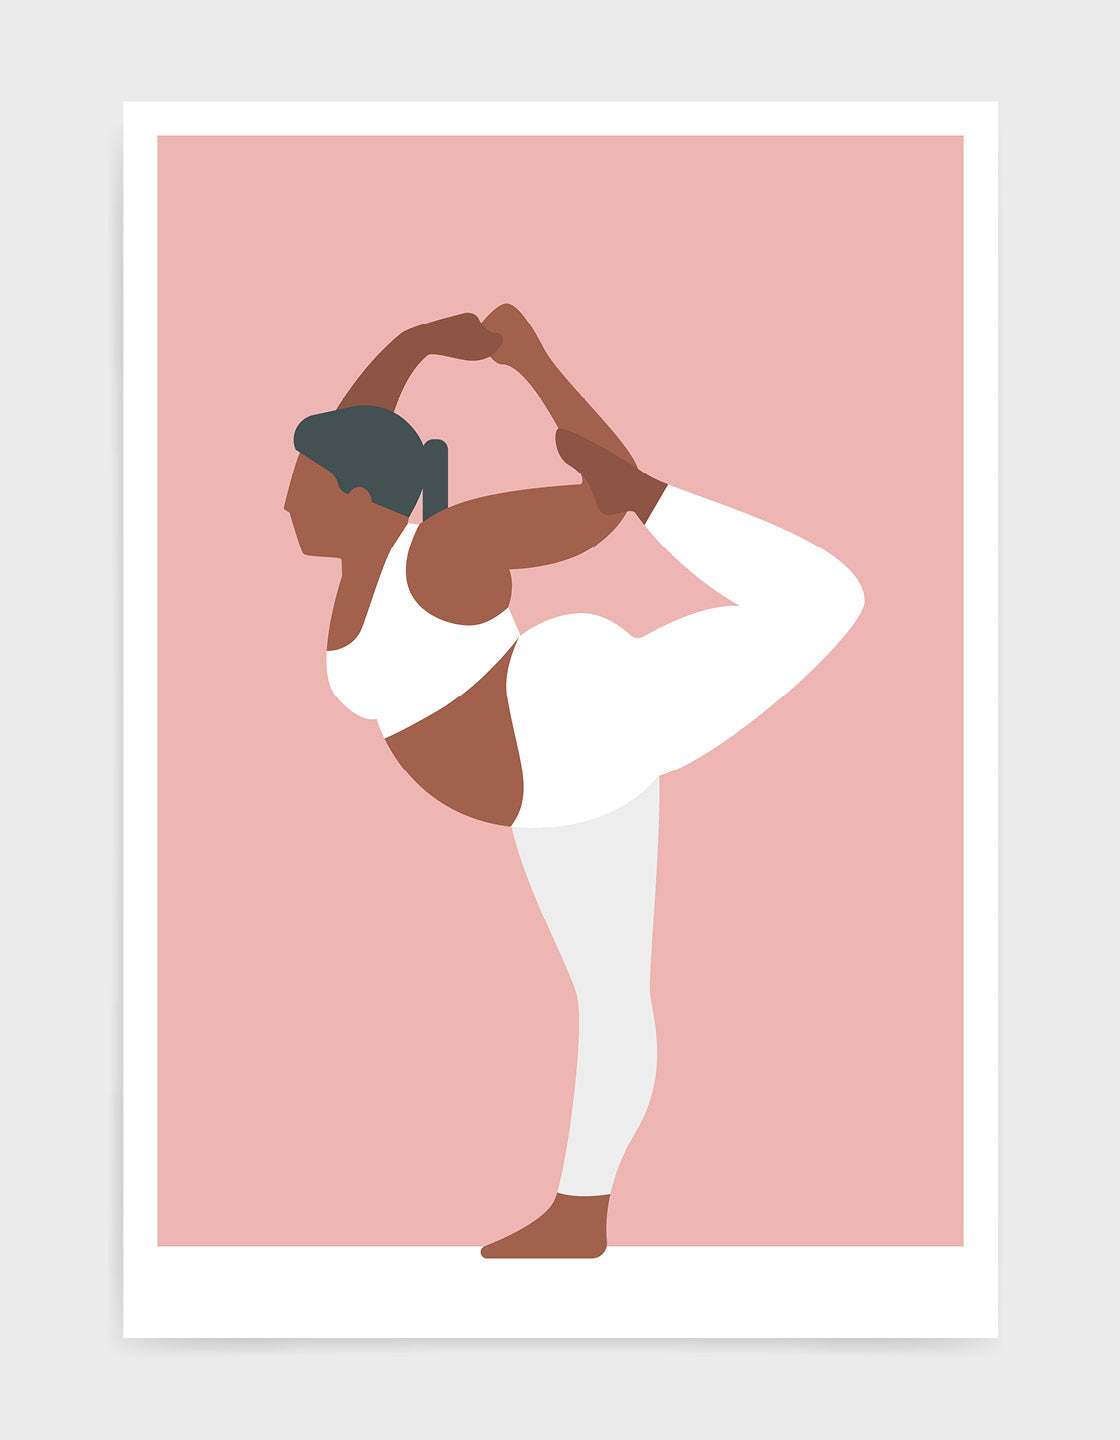 yoga pose print o a larger lady in standing bow pose against a pink background